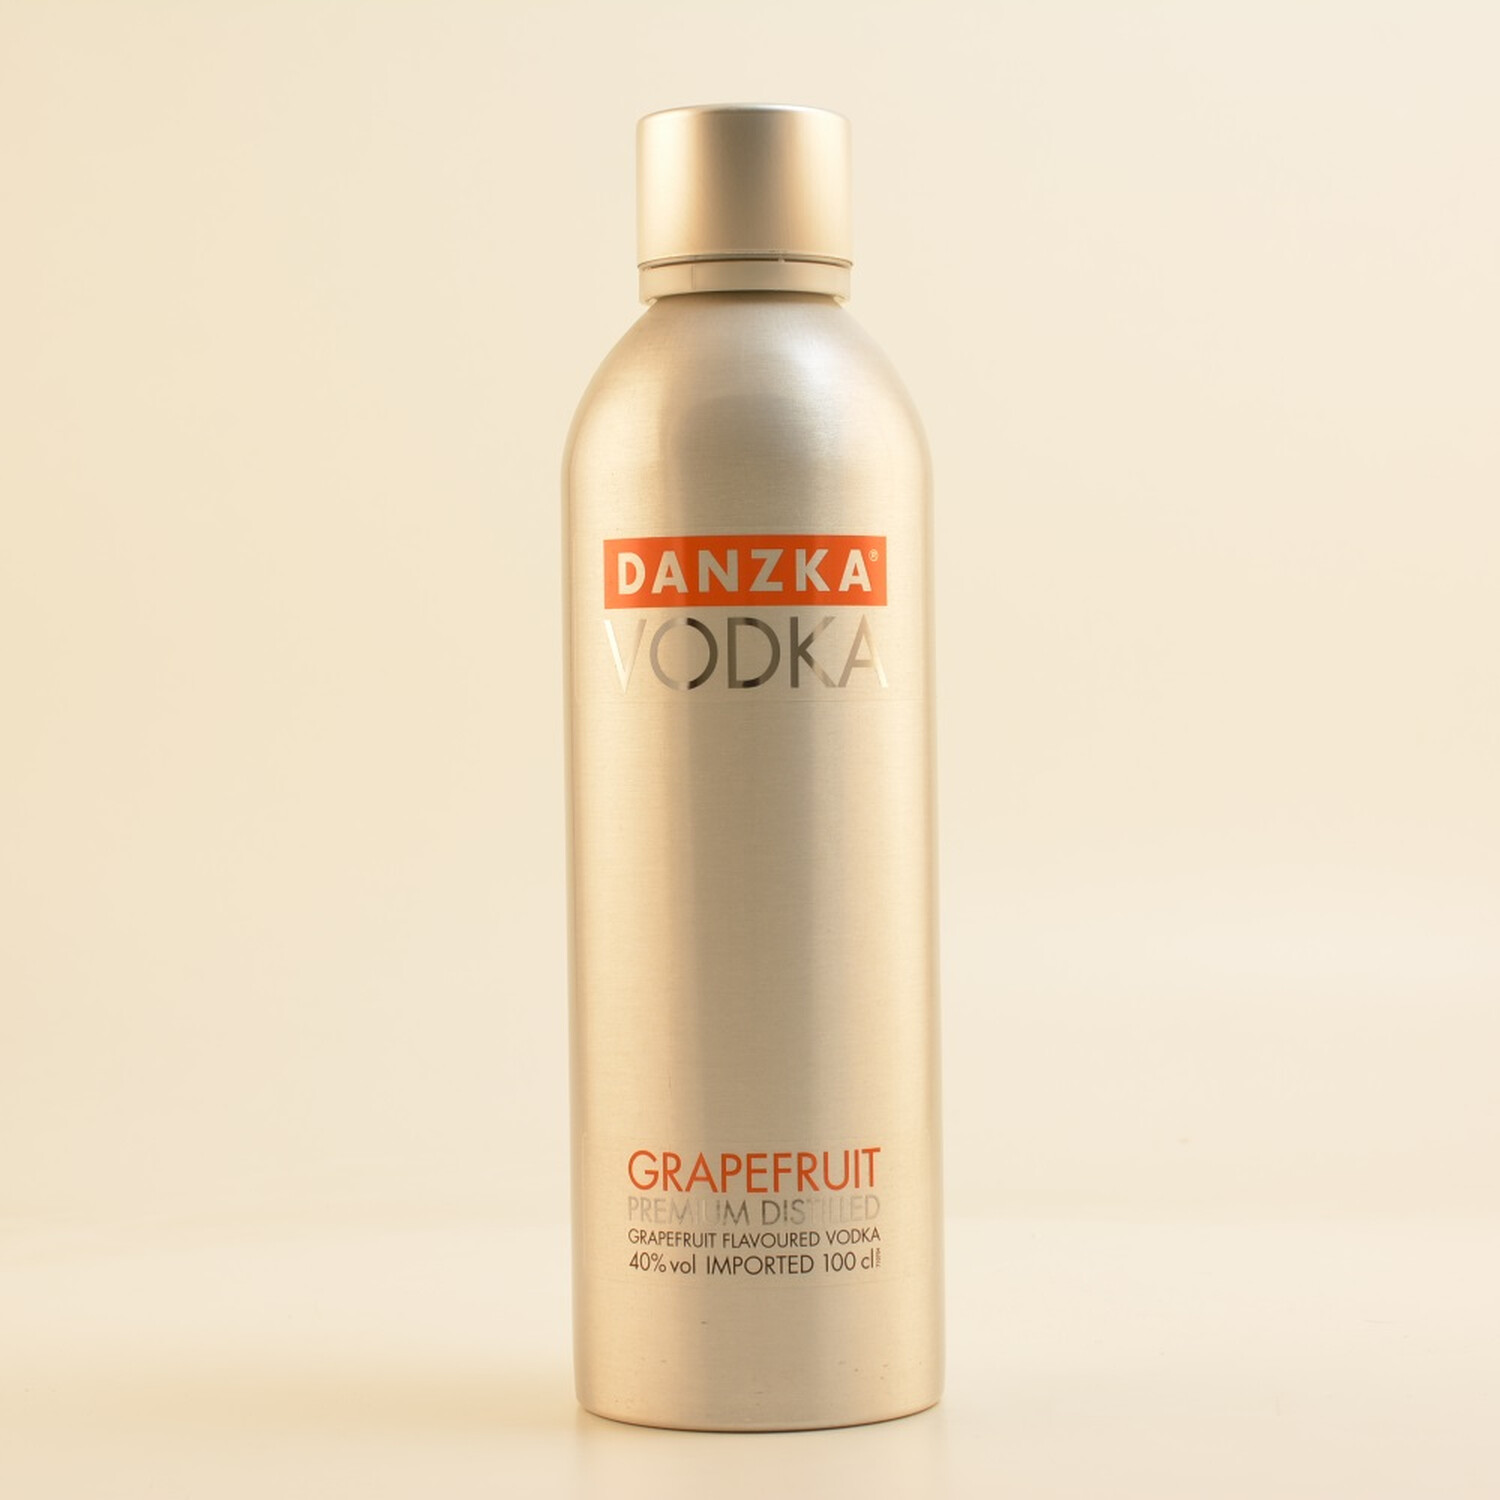 Danzka Vodka Grapefruit 40% 1,0l